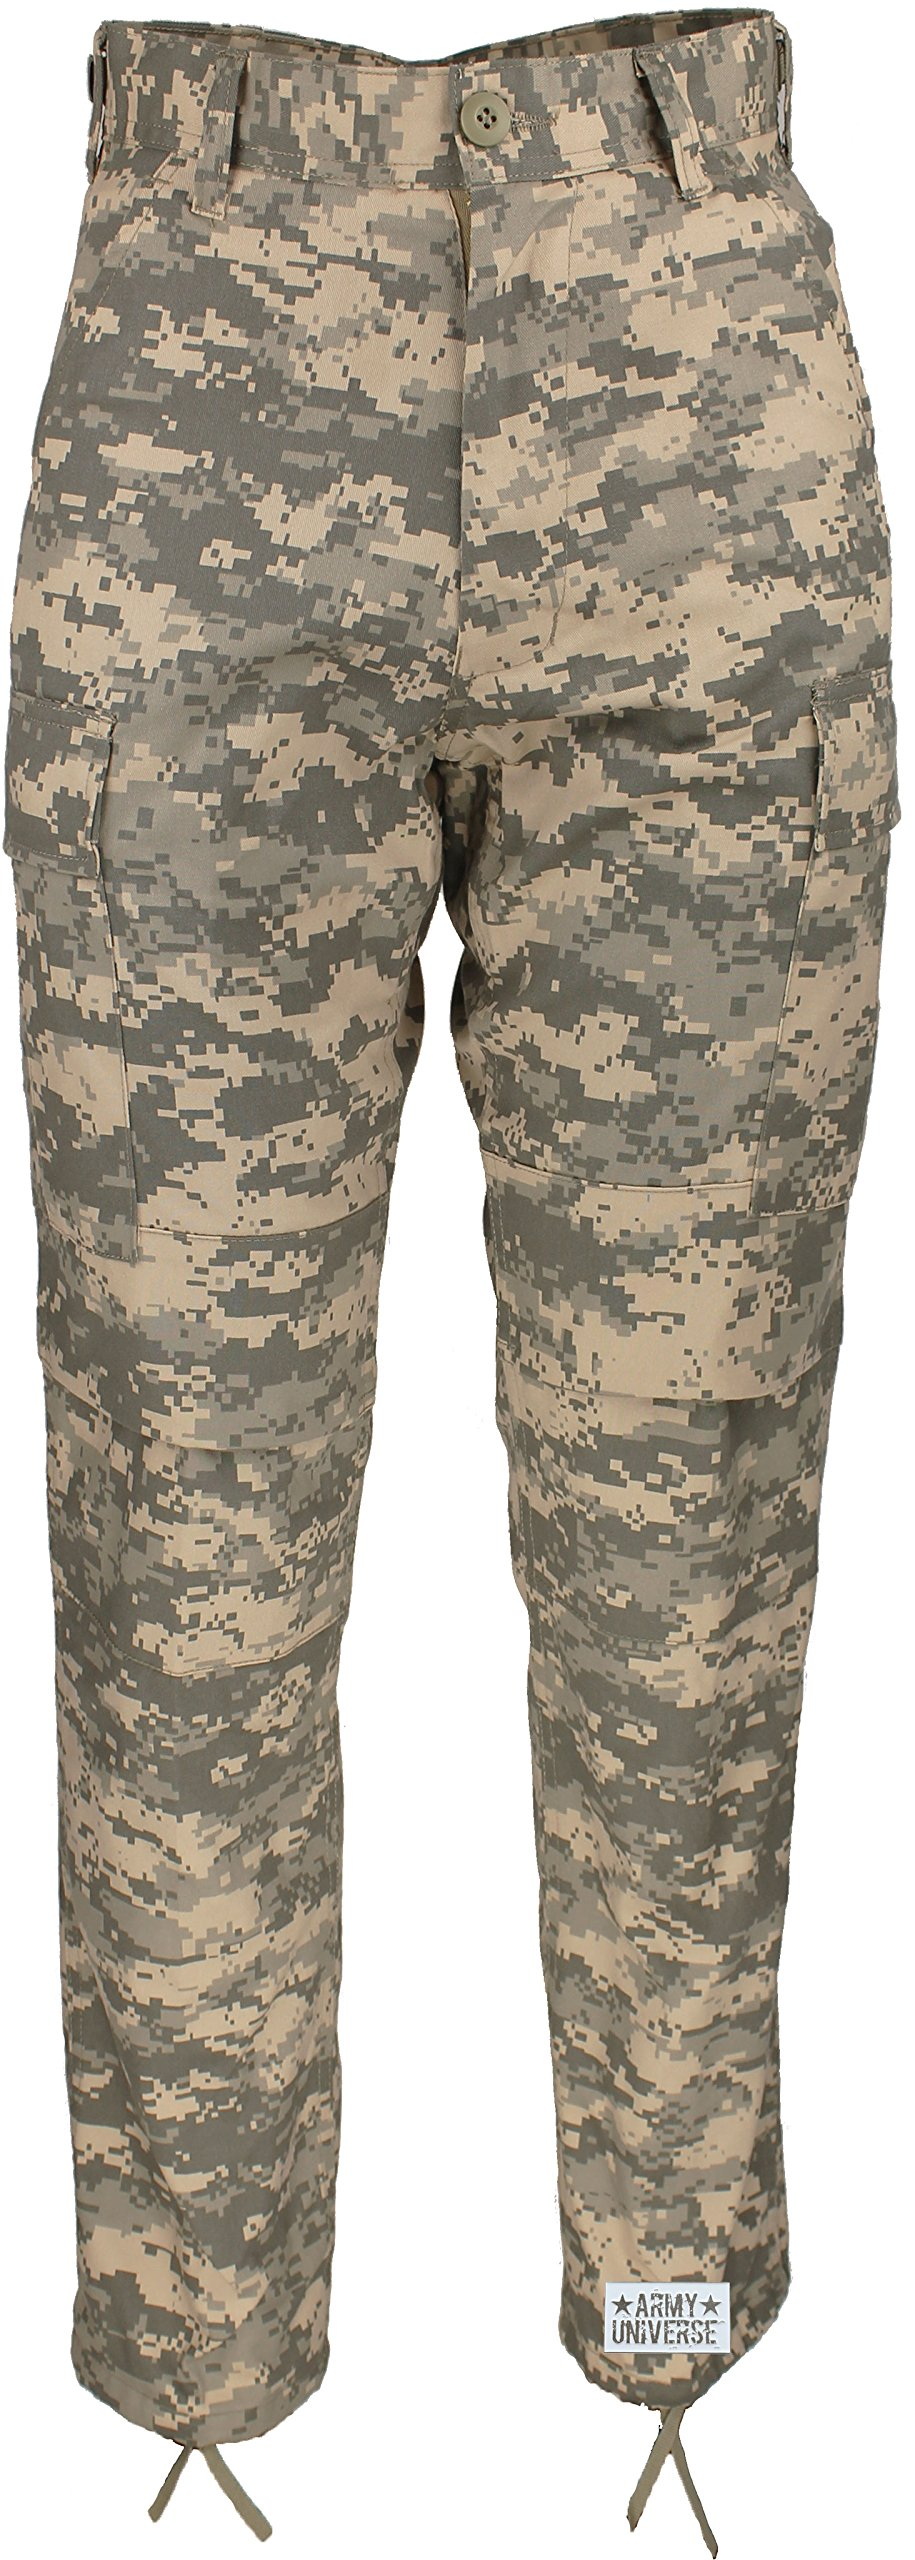 Army Universe Mens ACU Digital Camouflage Poly/Cotton Military BDU Army Fatigues Cargo Pants with Official Pin (W 39-43 - I 29.5-32.5 - X-Large Reg)